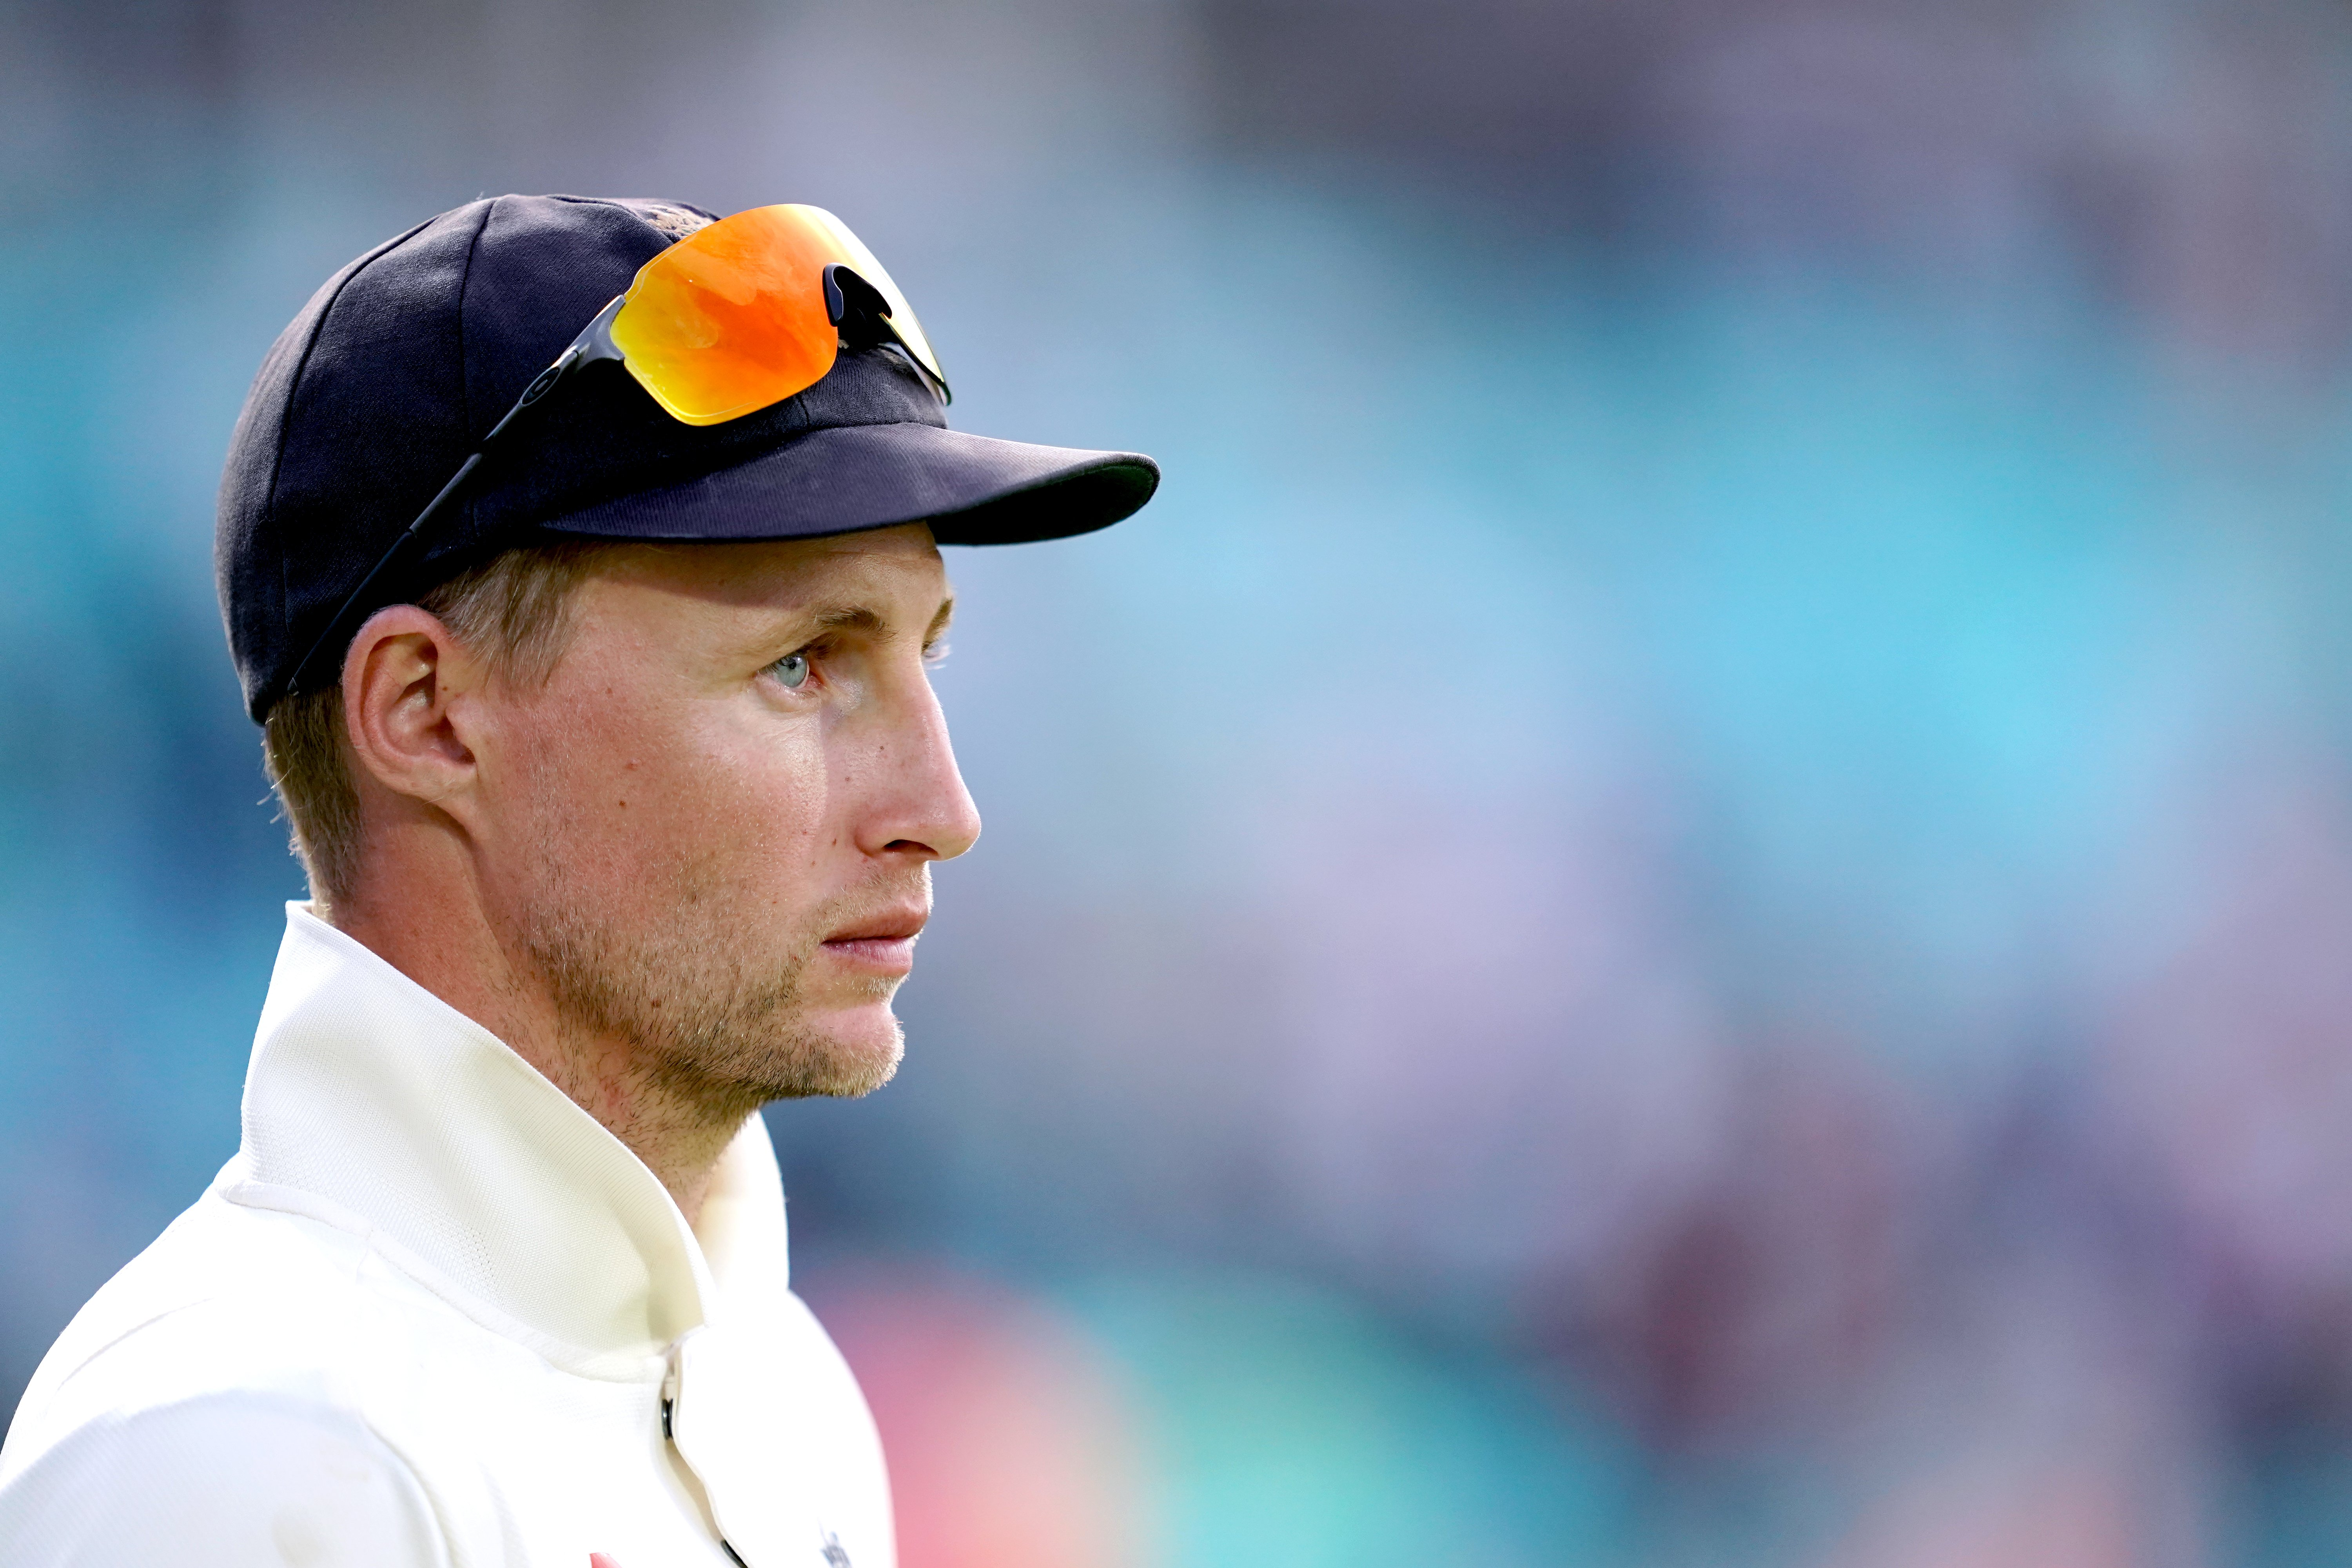 Joe Root invites ICC to make own judgement on Ahmedabad pitch